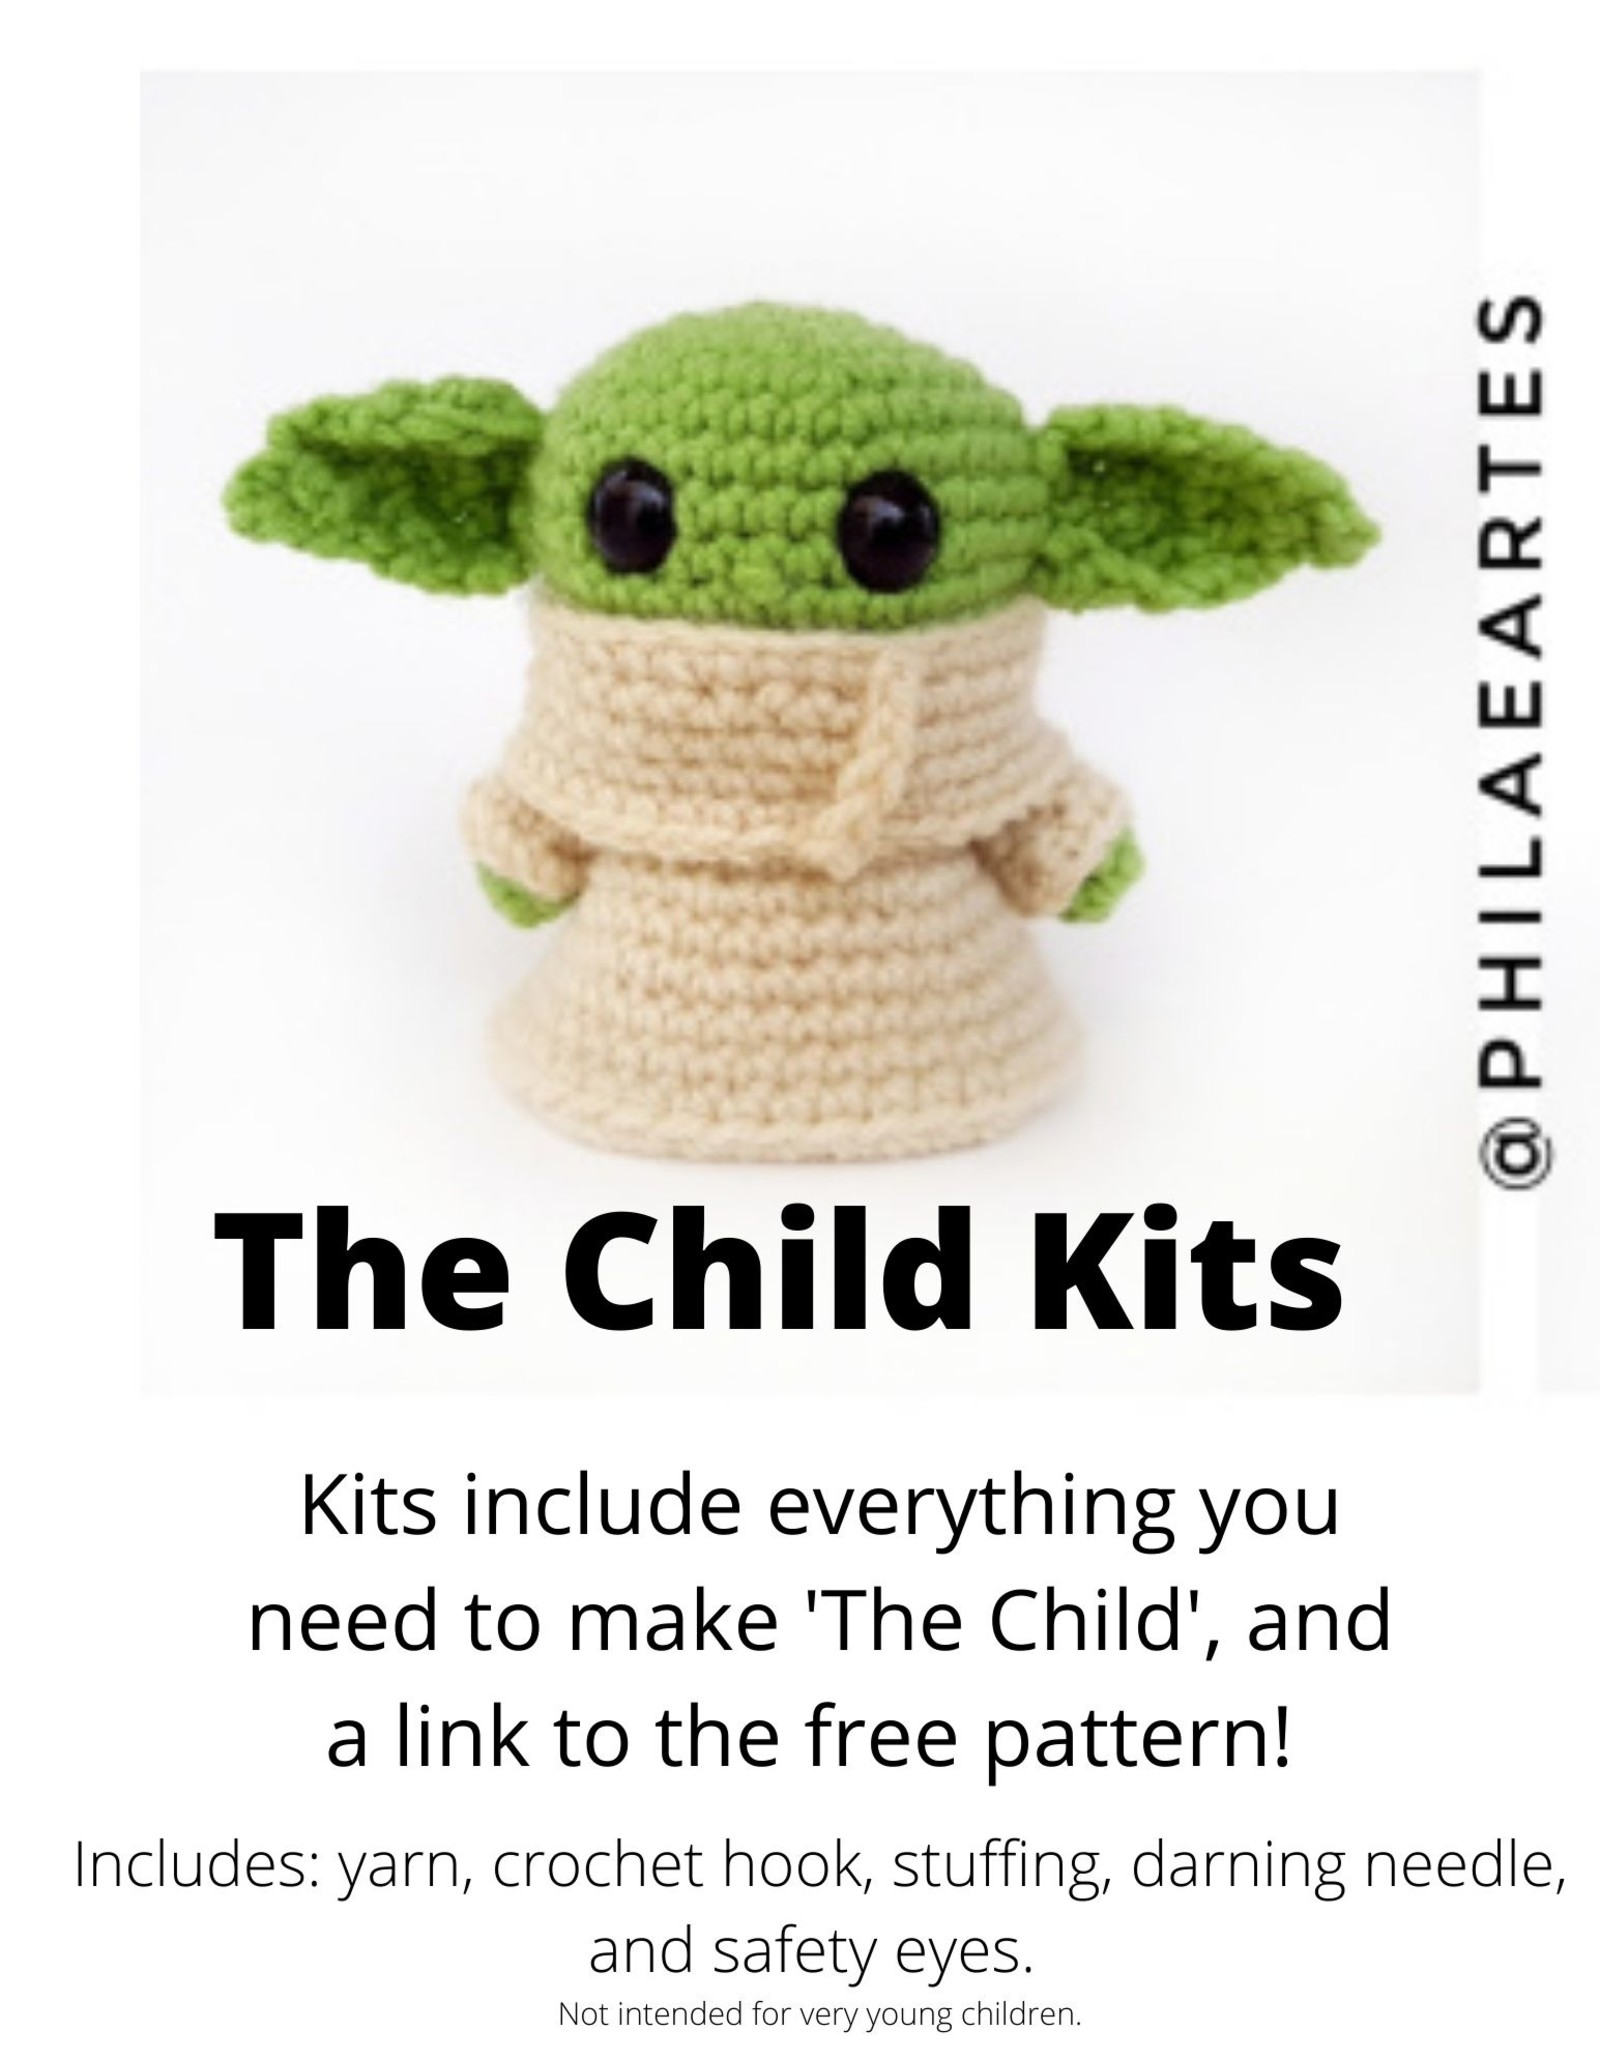 The Child Kits